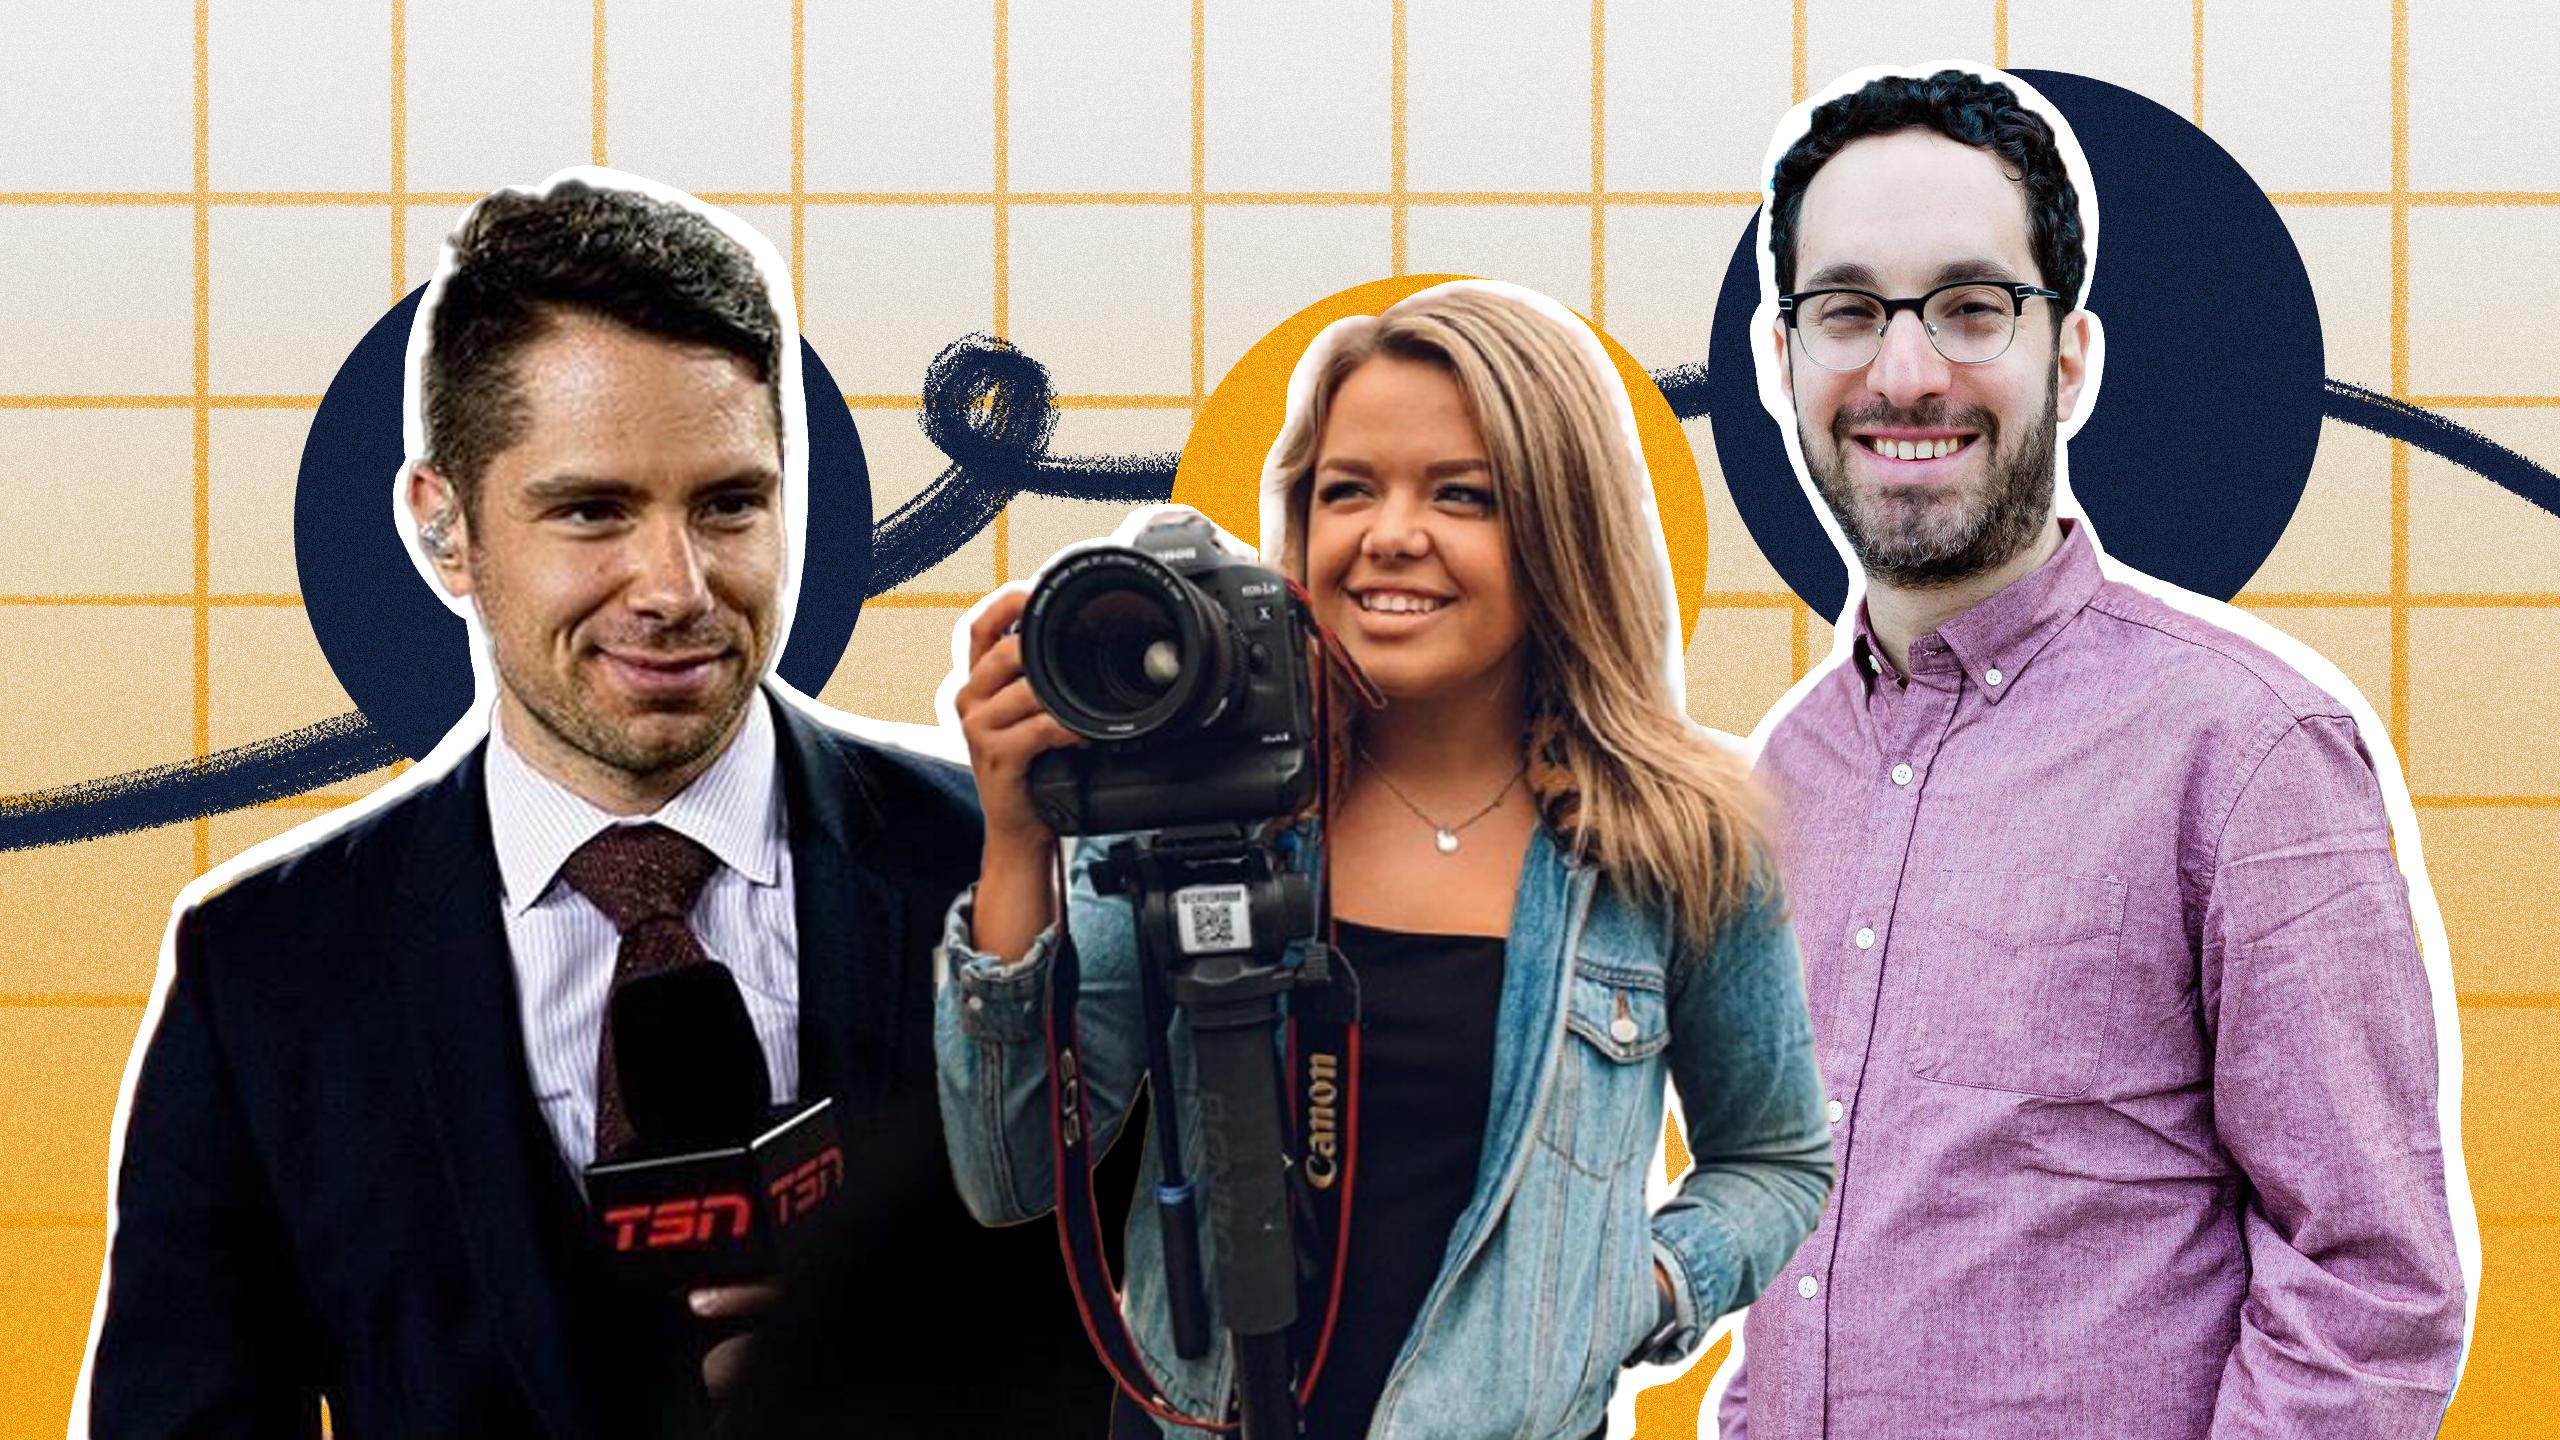 A collage of a man in a suit holding a TSN microphone, a woman smiling holding a DSLR, and another man smiling.